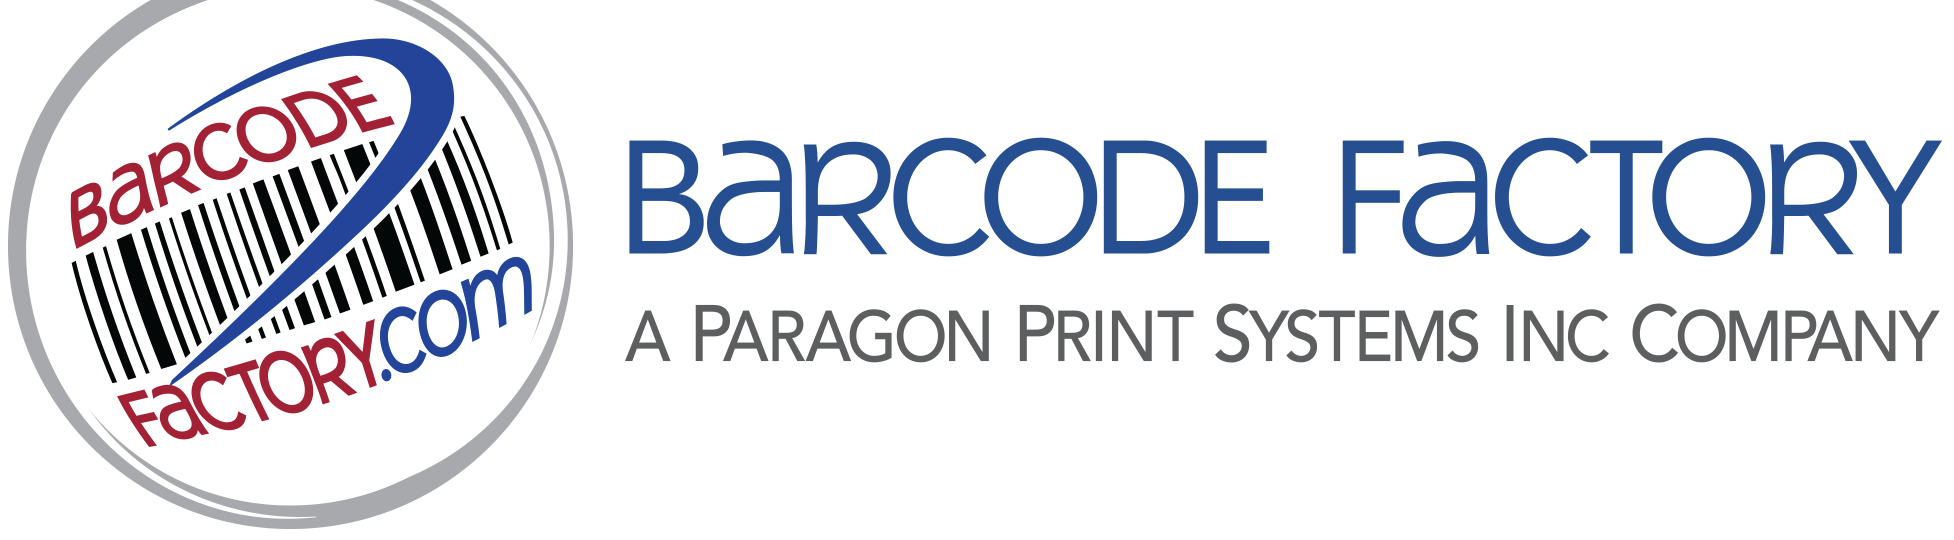 Barcodefactory.com Our resources, Your solution for all your barcoding needs. Call 1.888.237.8525